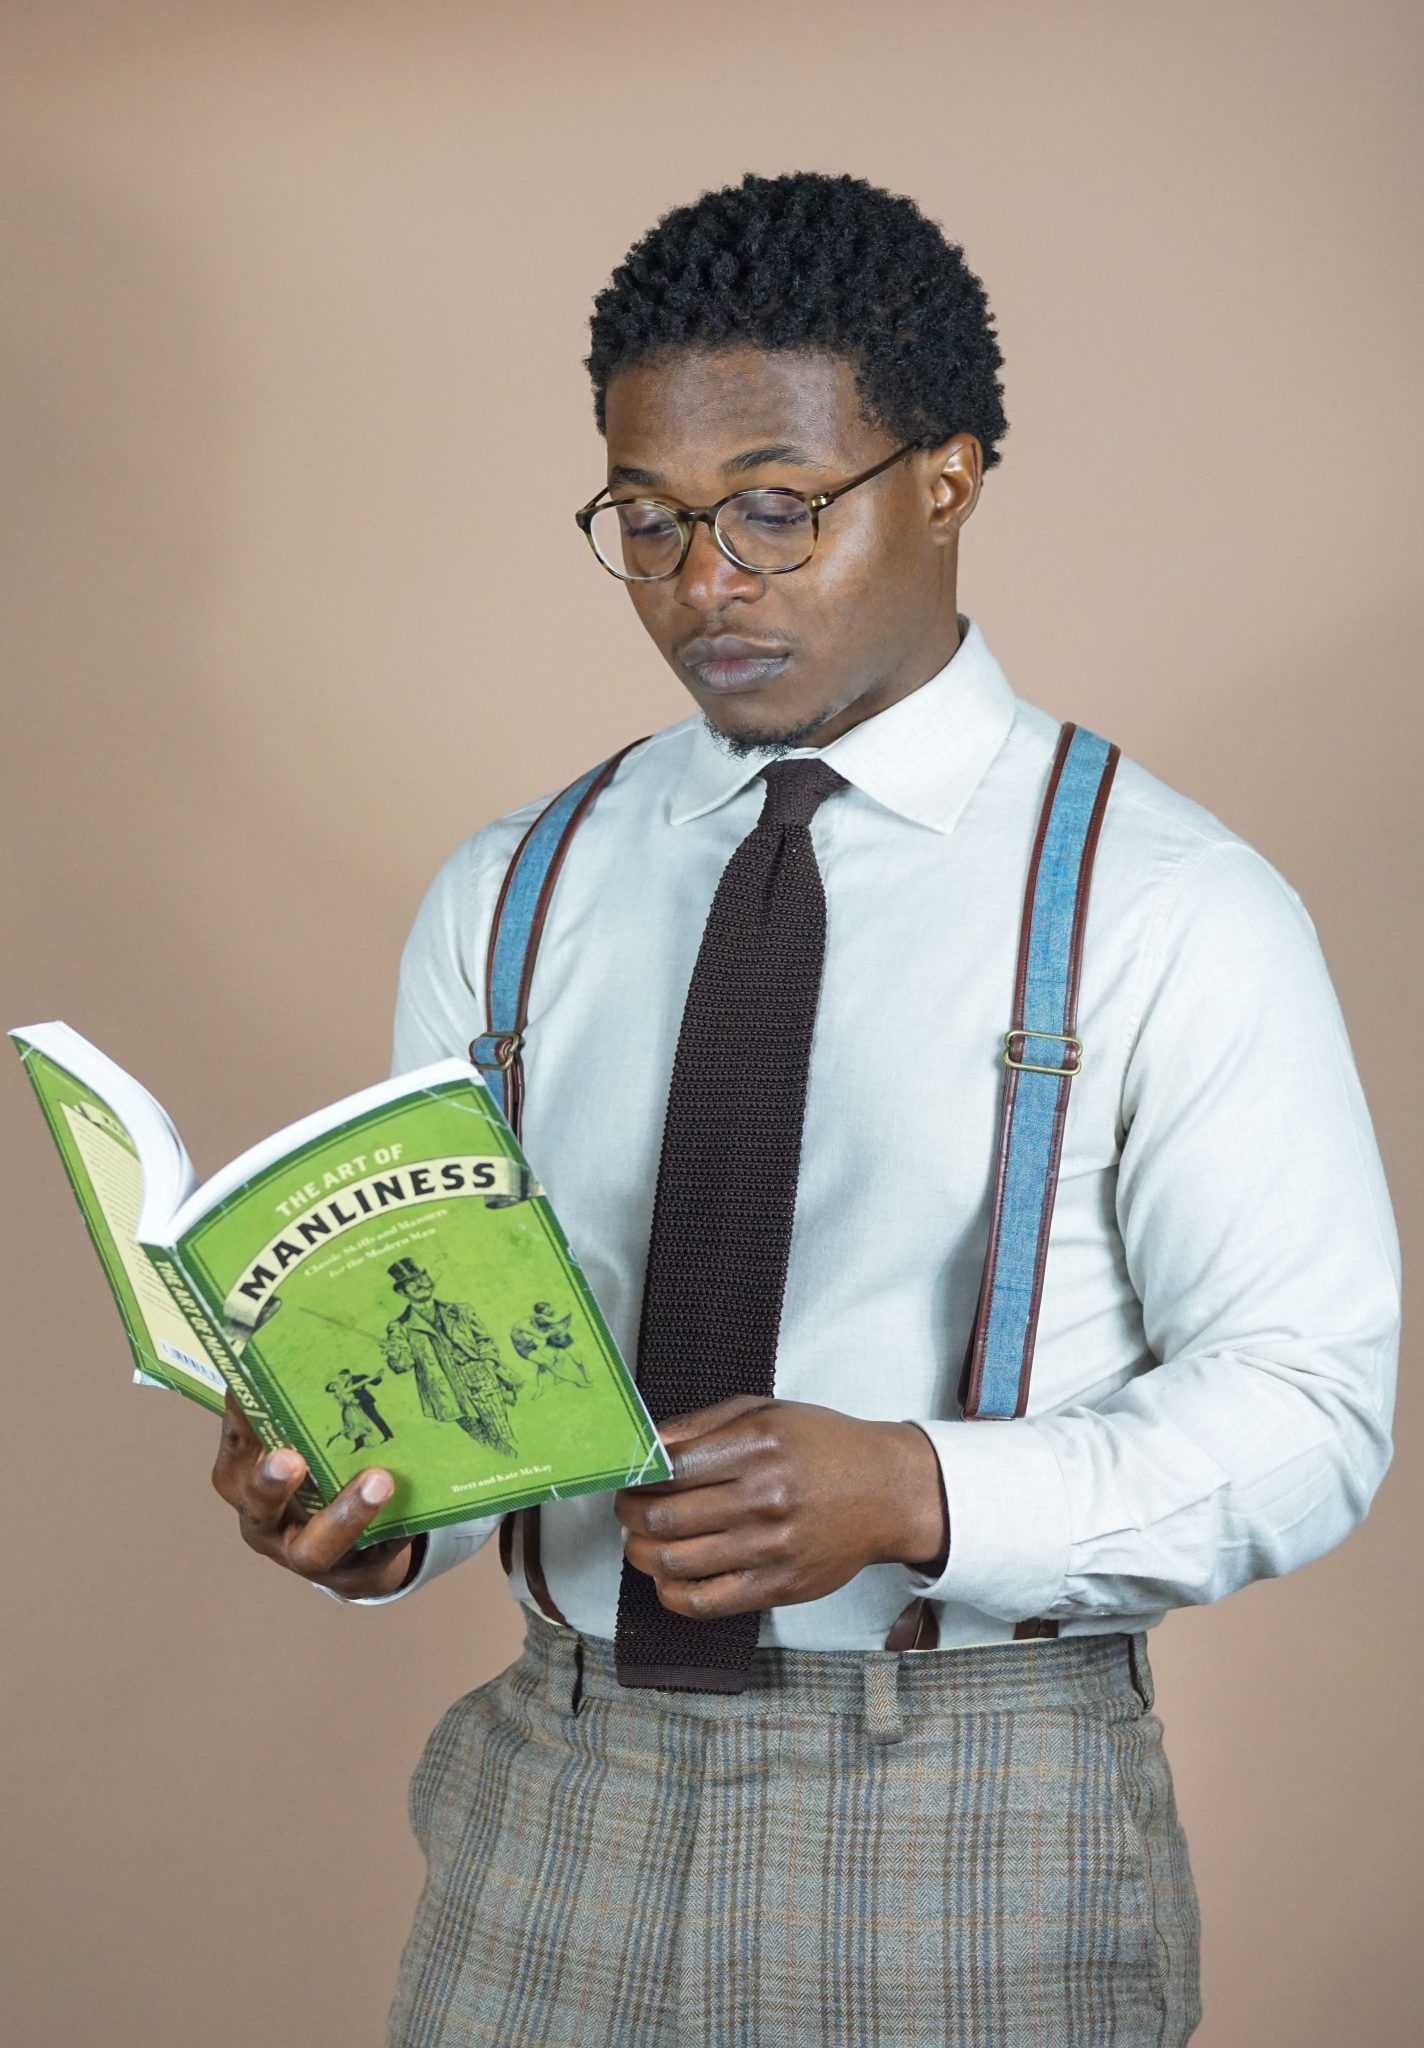 dapper-advisor-black-man-reading-books-wearing-shirt-tie-suspenders-plaid-pants-spring